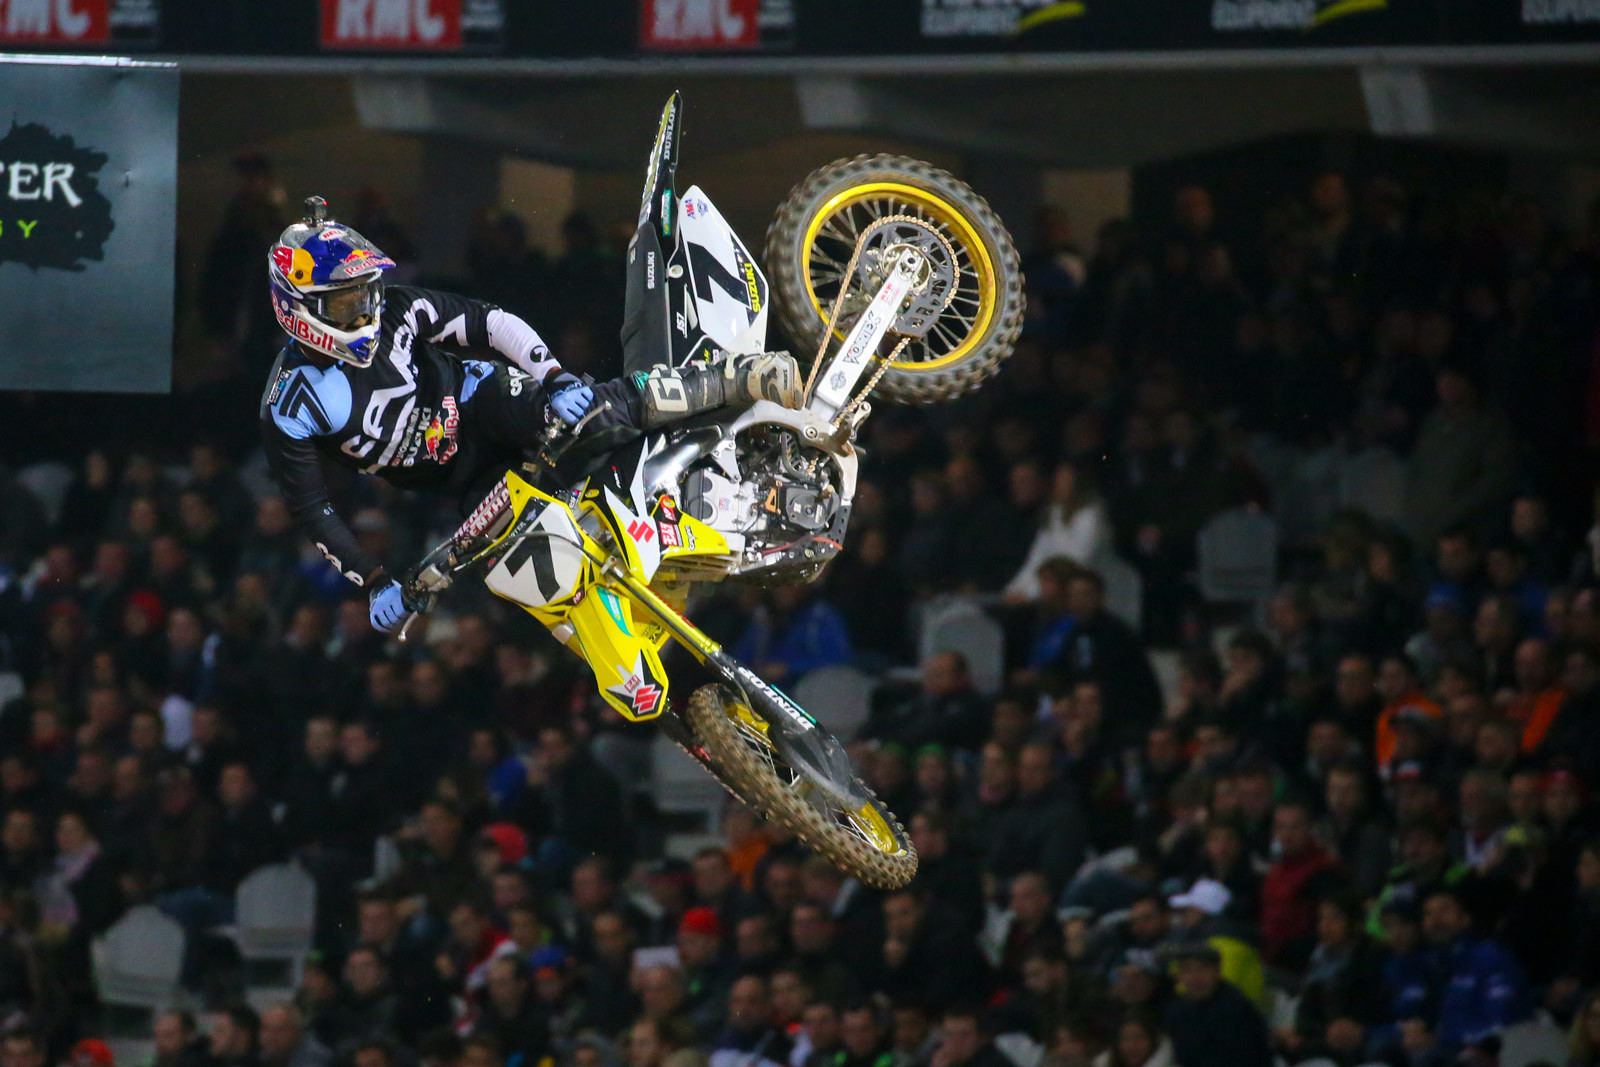 James Stewart - Vital MX Pit Bits: Paris-Lille Supercross - Motocross Pictures - Vital MX